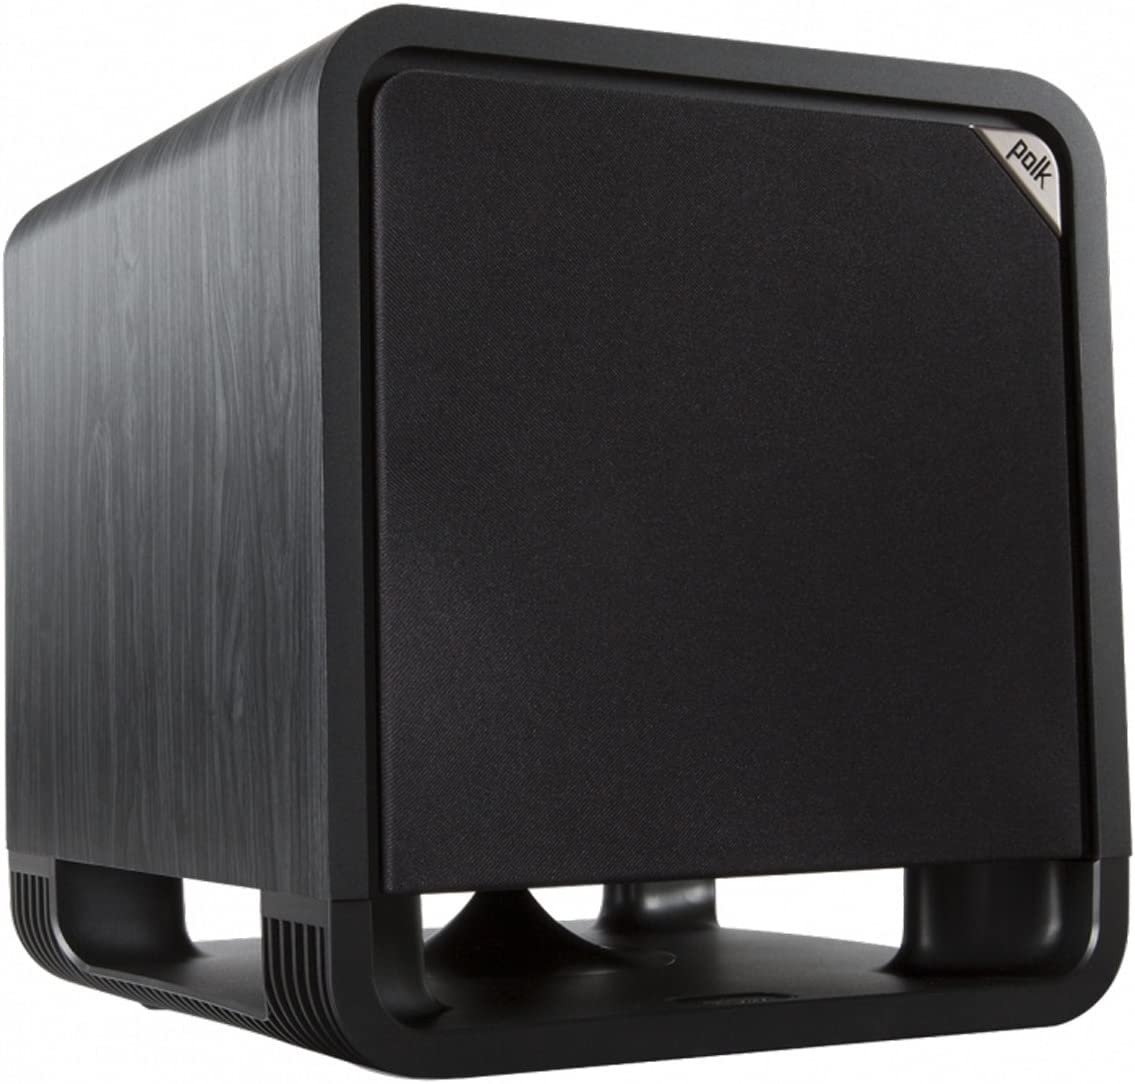 Polk Audio HTS 12 Powered Subwoofer with Power Port Technology 12 Woofer, up to 400W Amp For the Ultimate Home Theater Experience Modern Sub that Fits in any Setting Washed Black Walnut